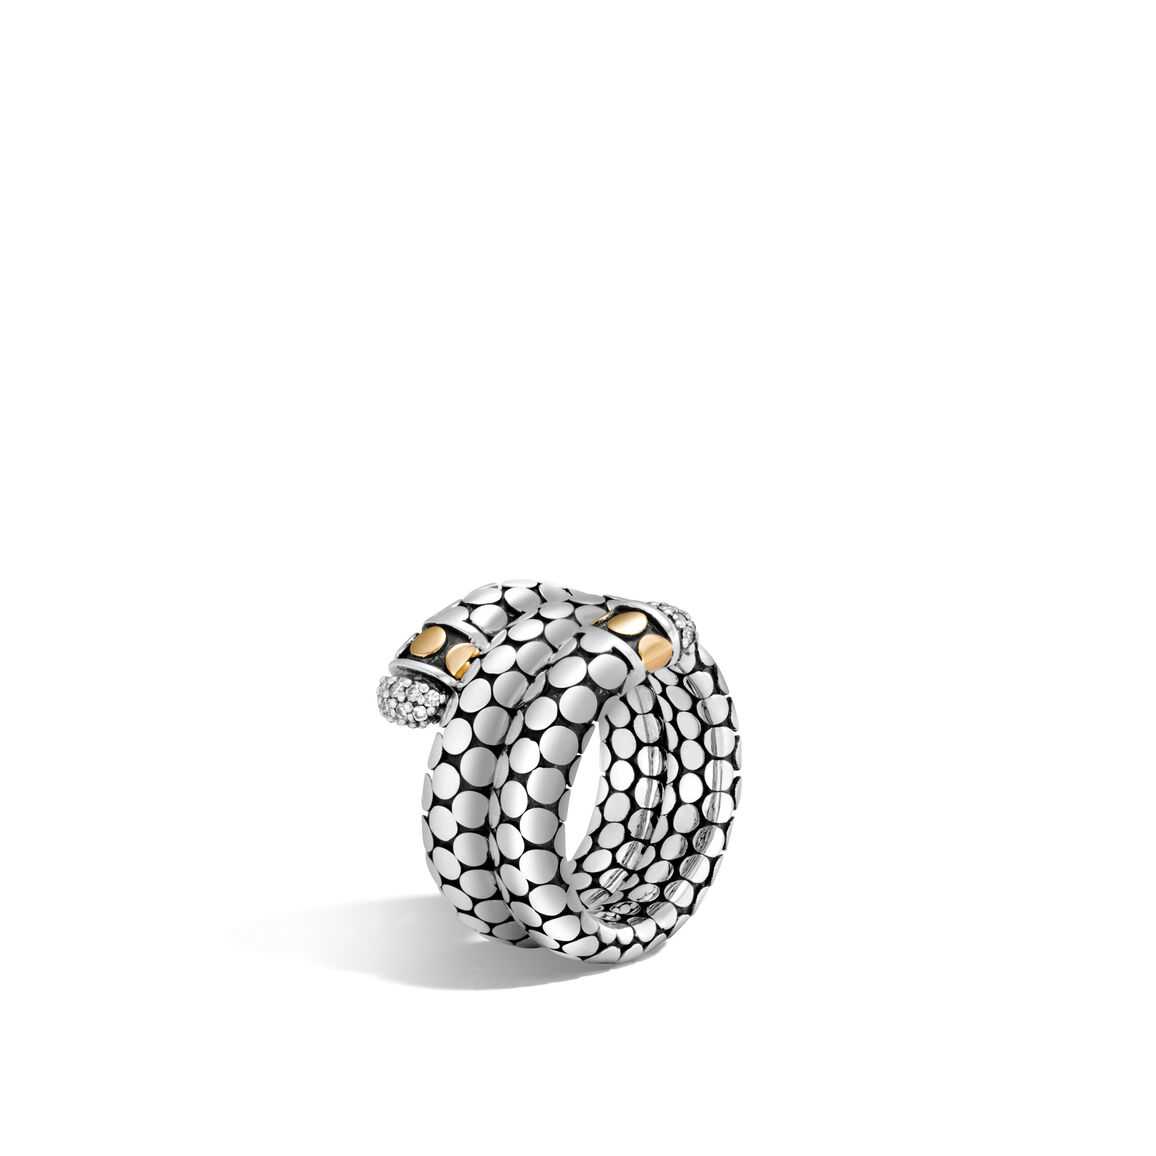 Dot Double Coil Ring in Silver and 18K Gold with Diamonds